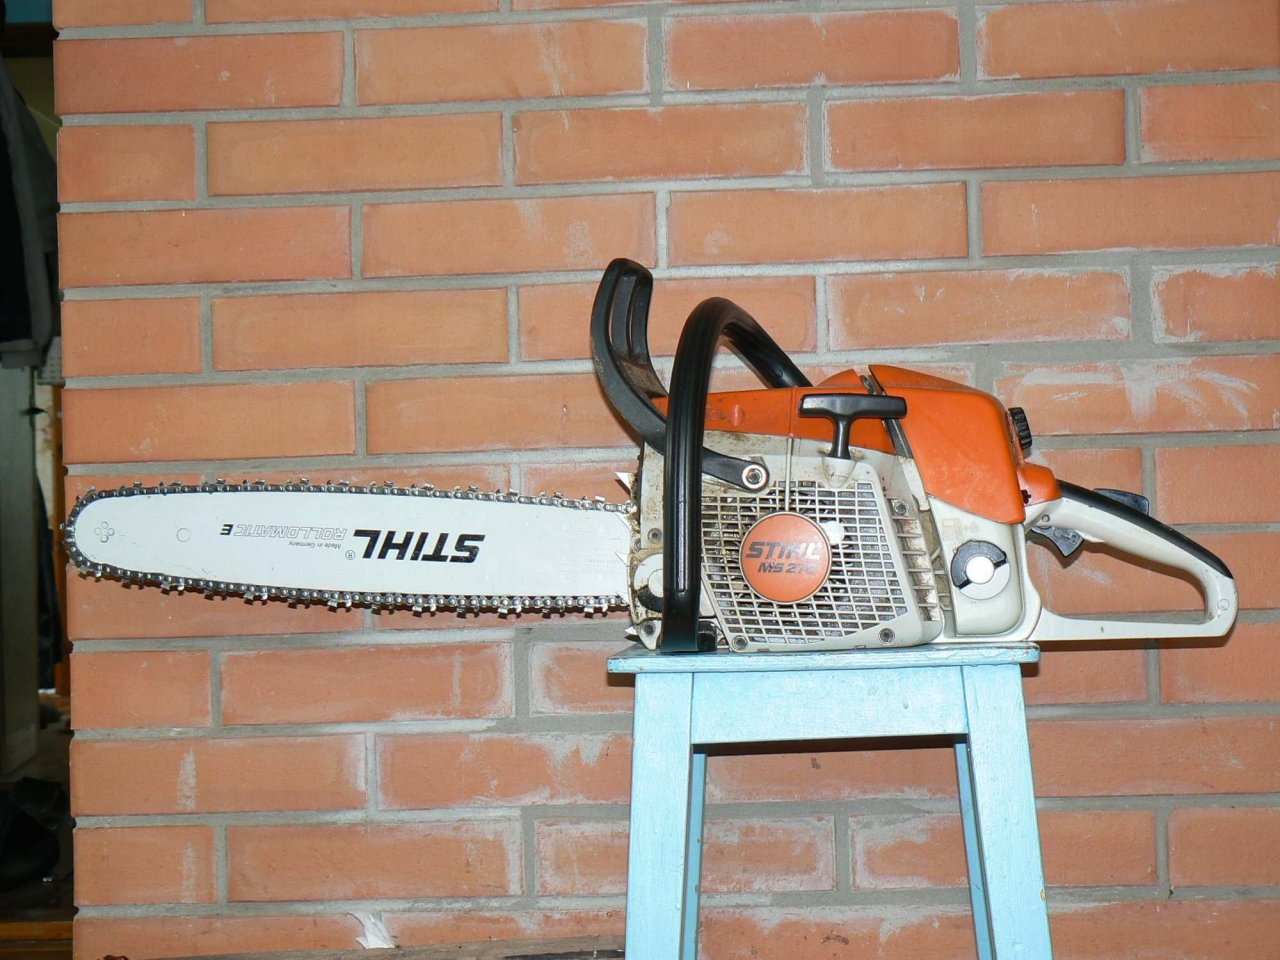 I have a stihl saw and oil is not getting to the chain bar diy forums i have a stihl saw and oil is not getting to the chain bar vale 2 years ago greentooth Gallery